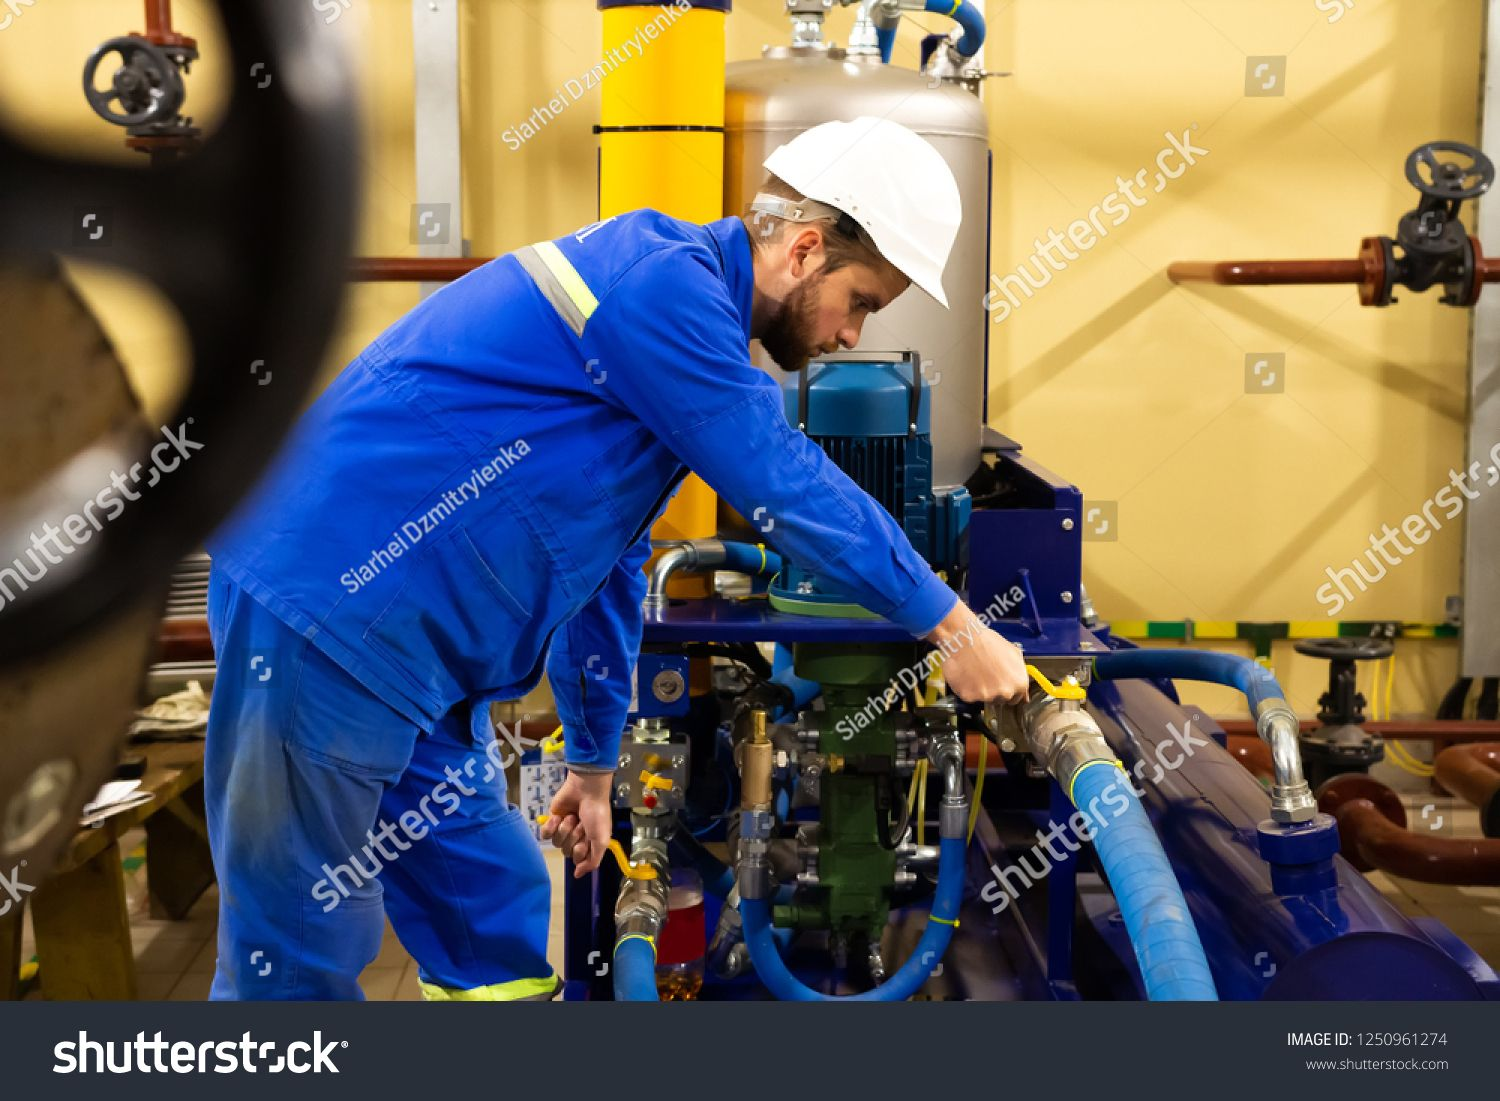 Technician maintenance of industrial oil pump on factory